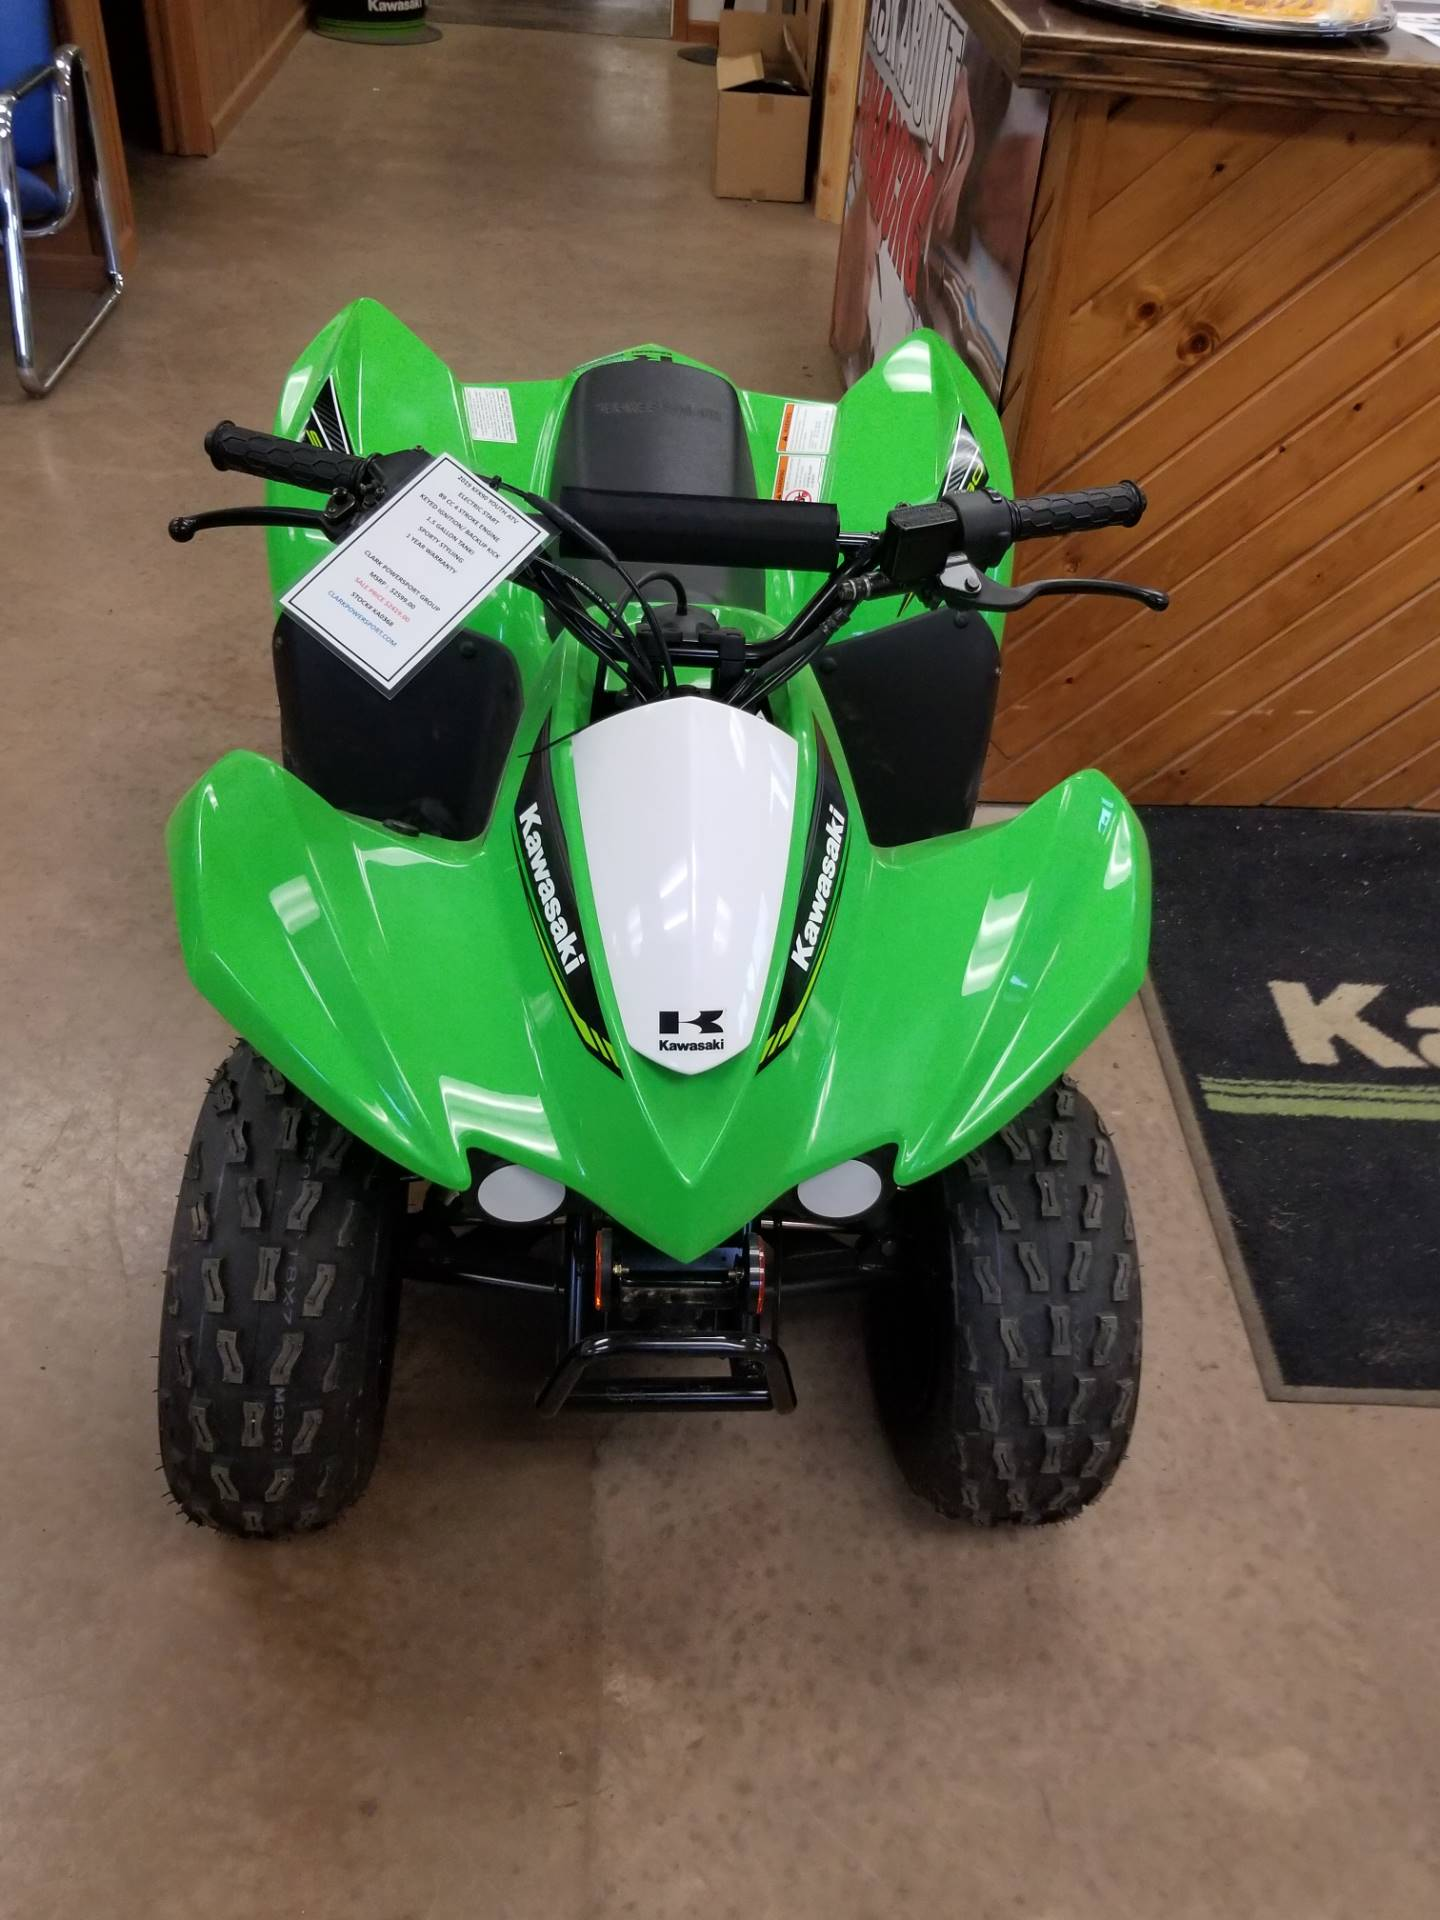 2019 Kawasaki KFX 50 in Hillsboro, Wisconsin - Photo 5